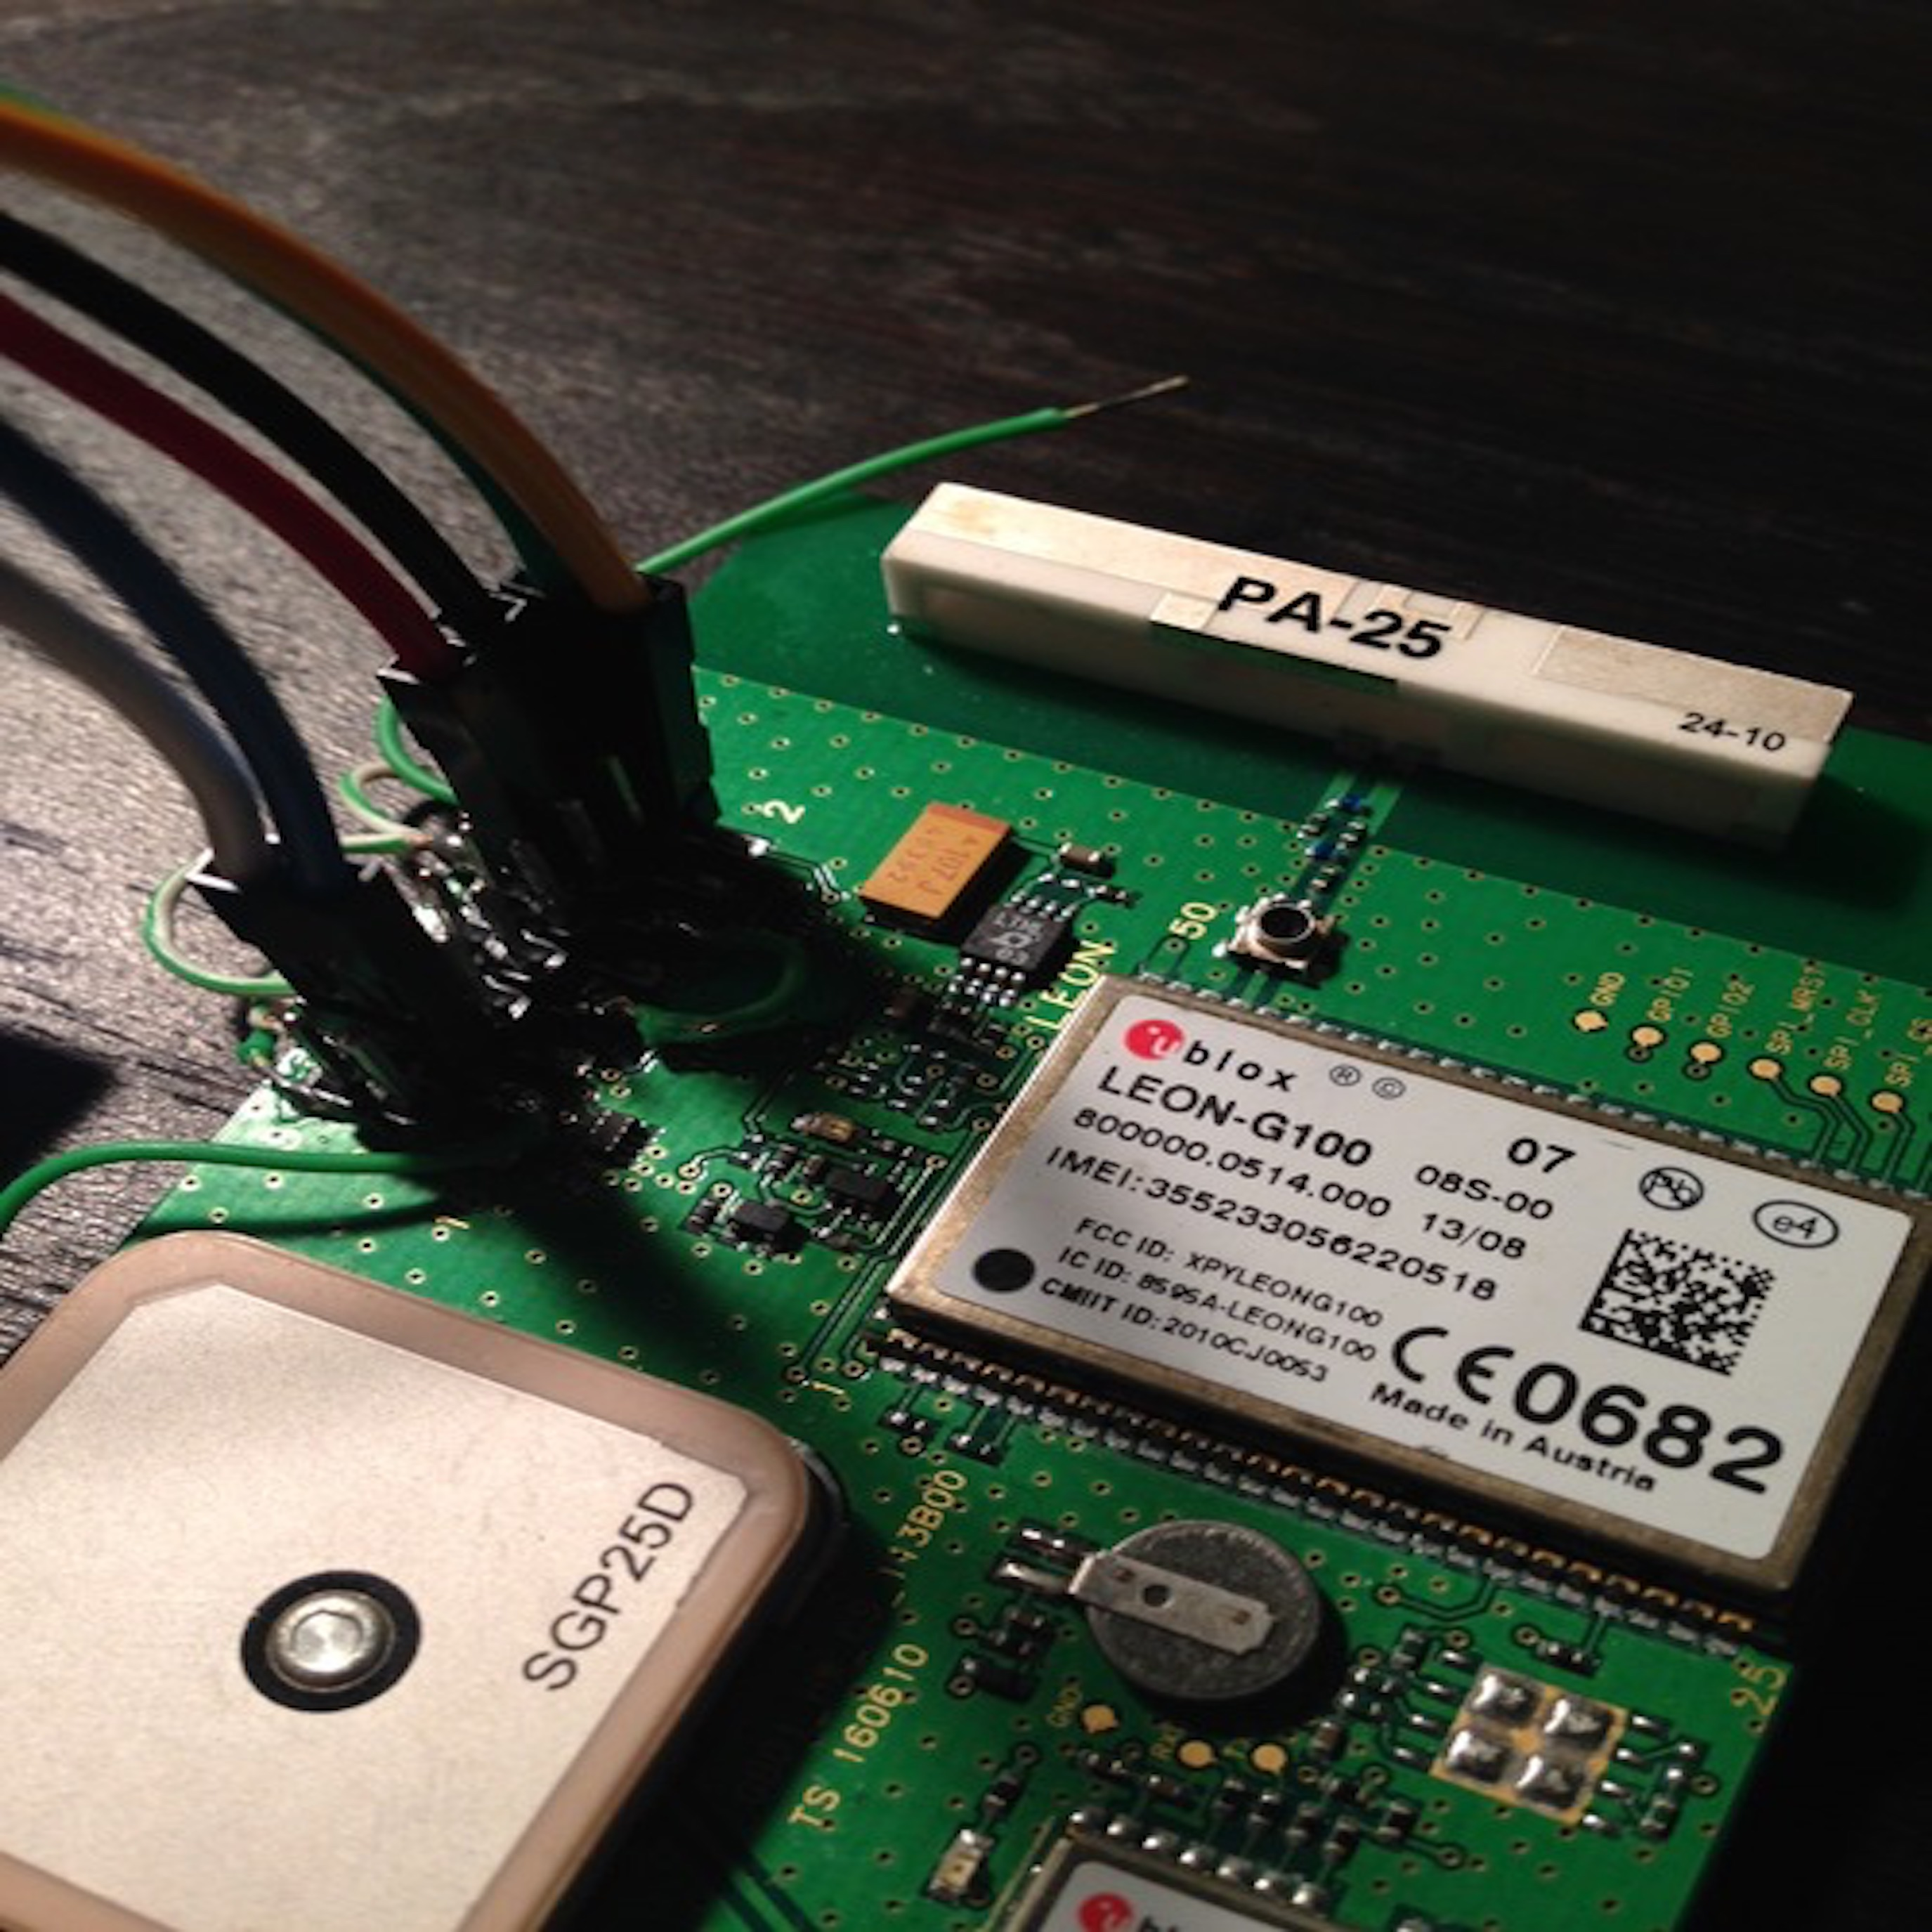 Blog Chips Scout Alarm Pics Photos Electronic Circuit Board Showing Wires And Microchips Green Boards